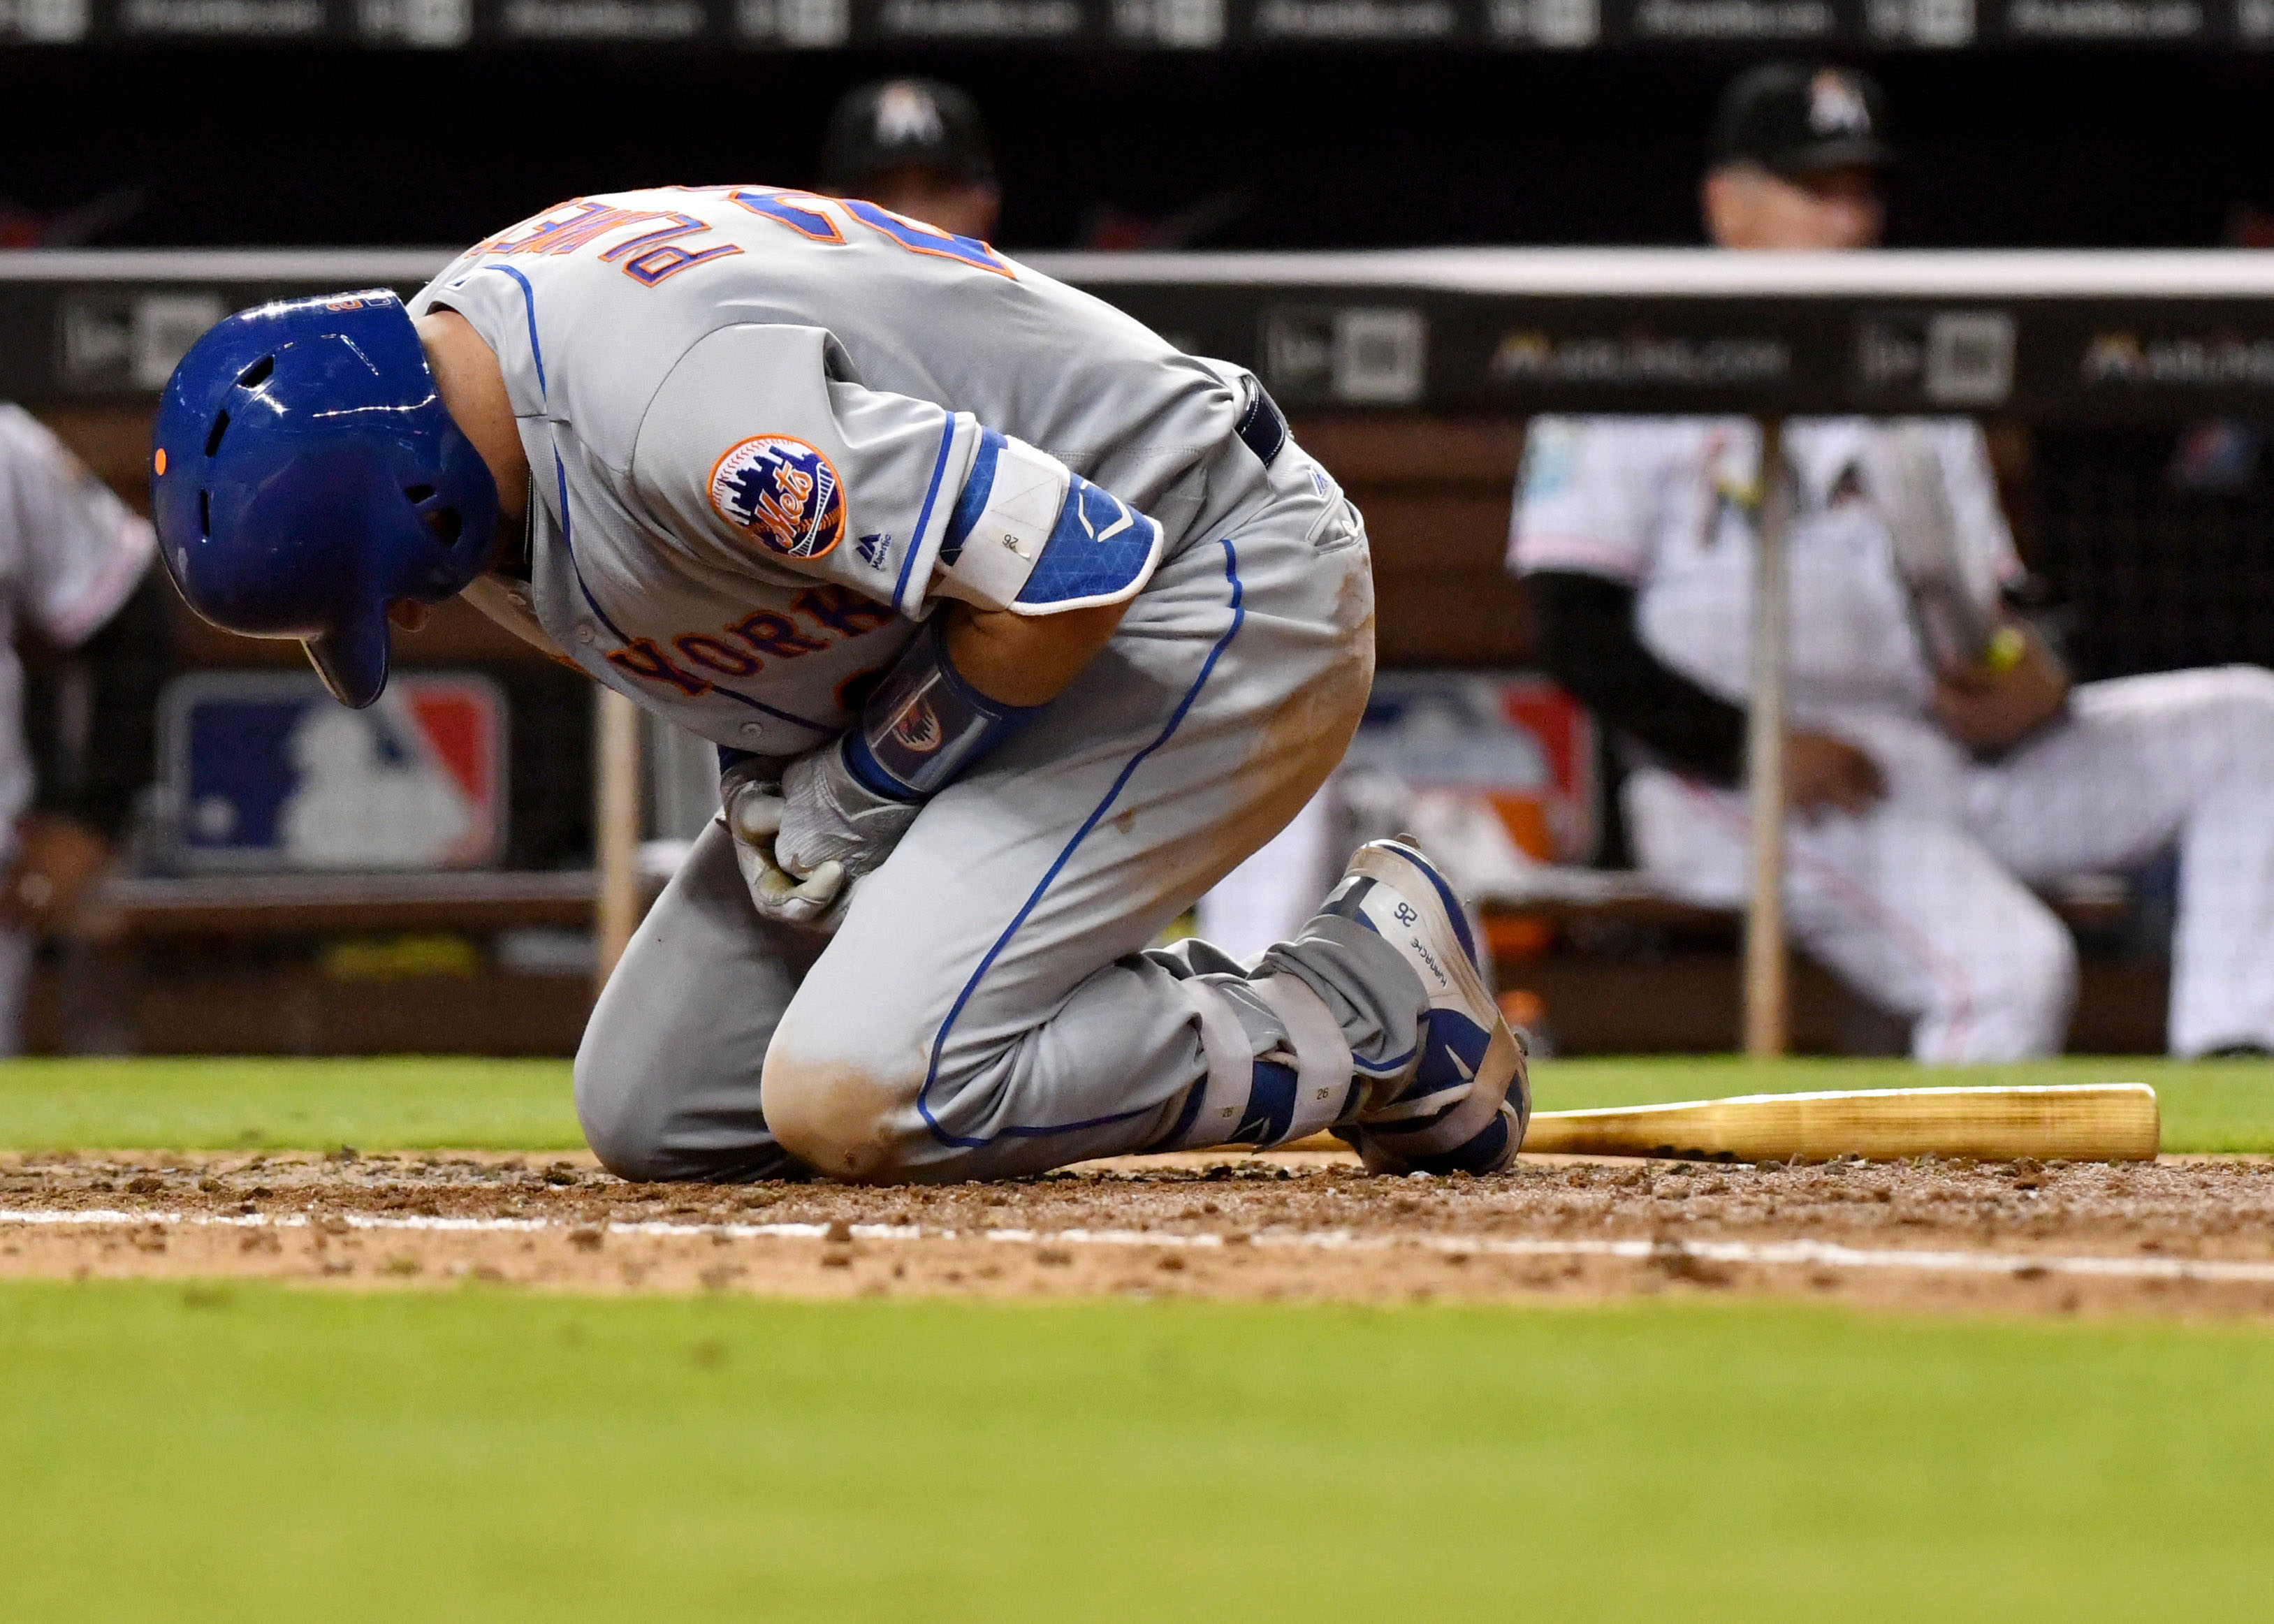 Kevin Plawecki Injury Changes The New York Mets' Equation At Catcher